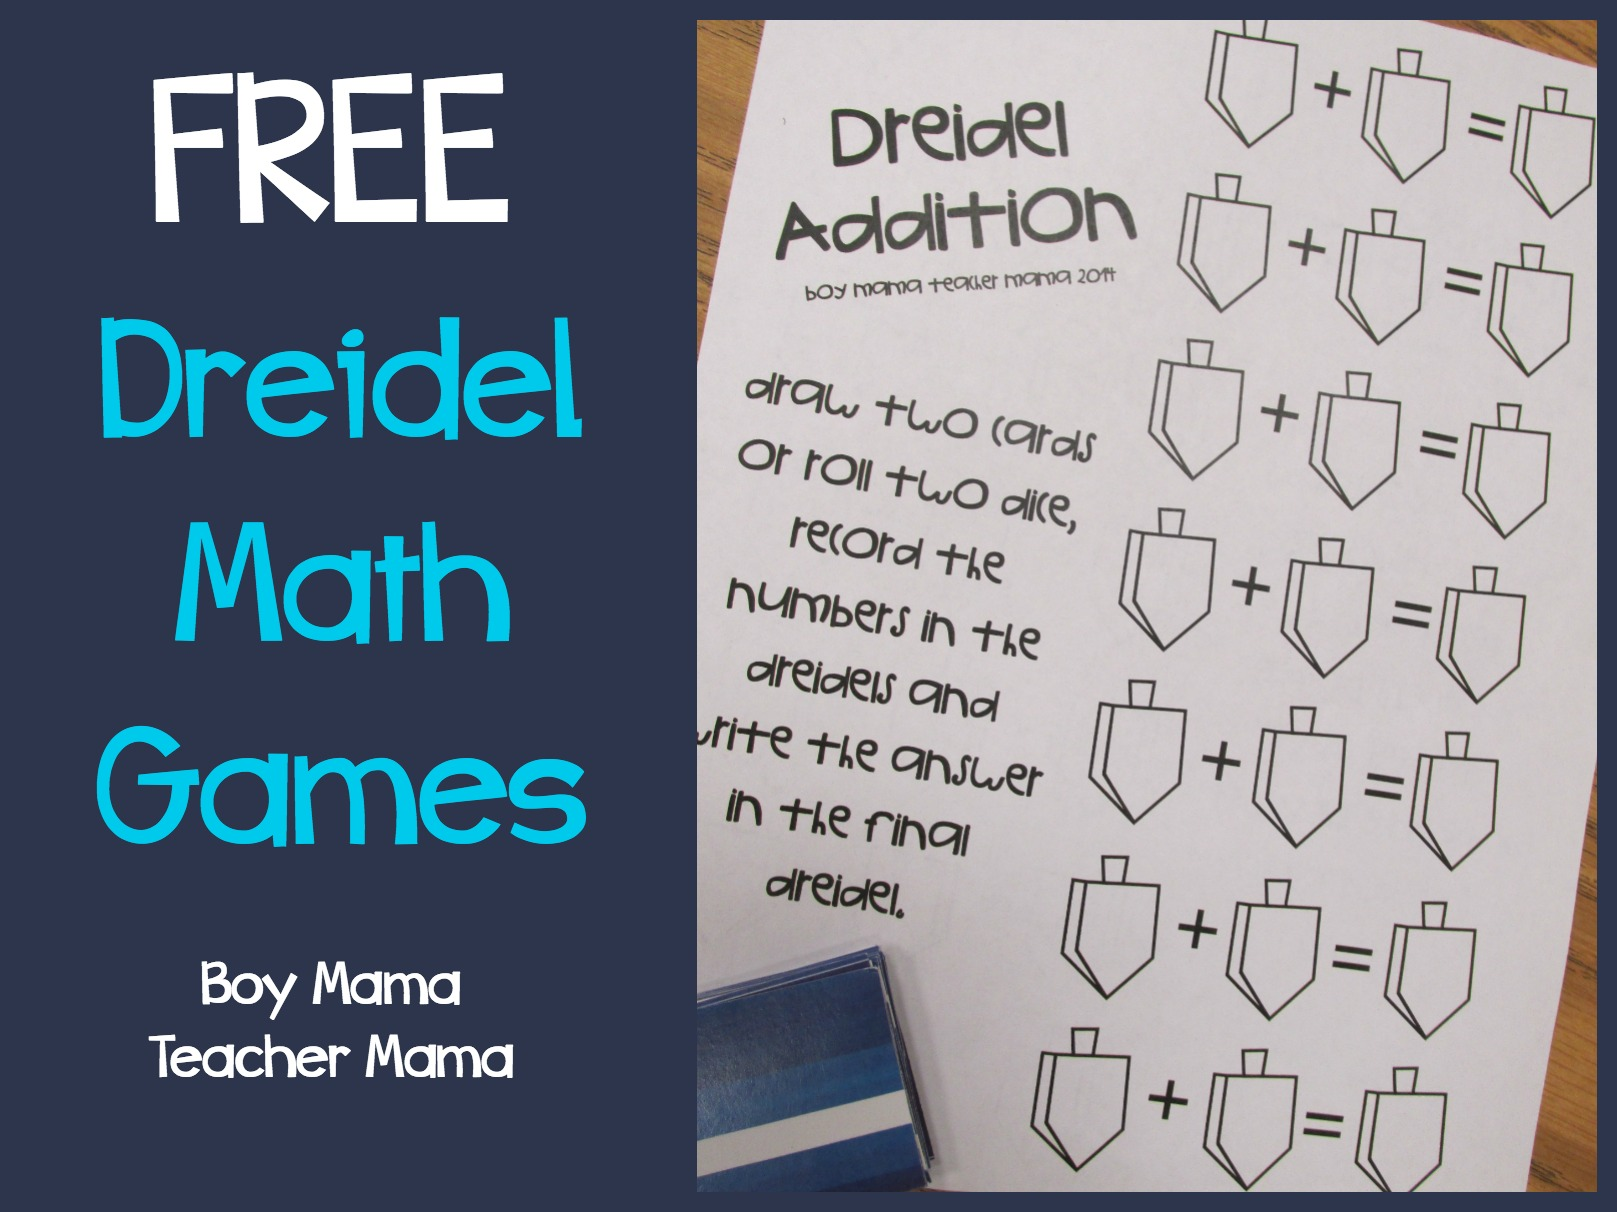 photograph about How to Play the Dreidel Game Printable called Trainer Mama: Free of charge Printable Dreidel Math Sport Once College